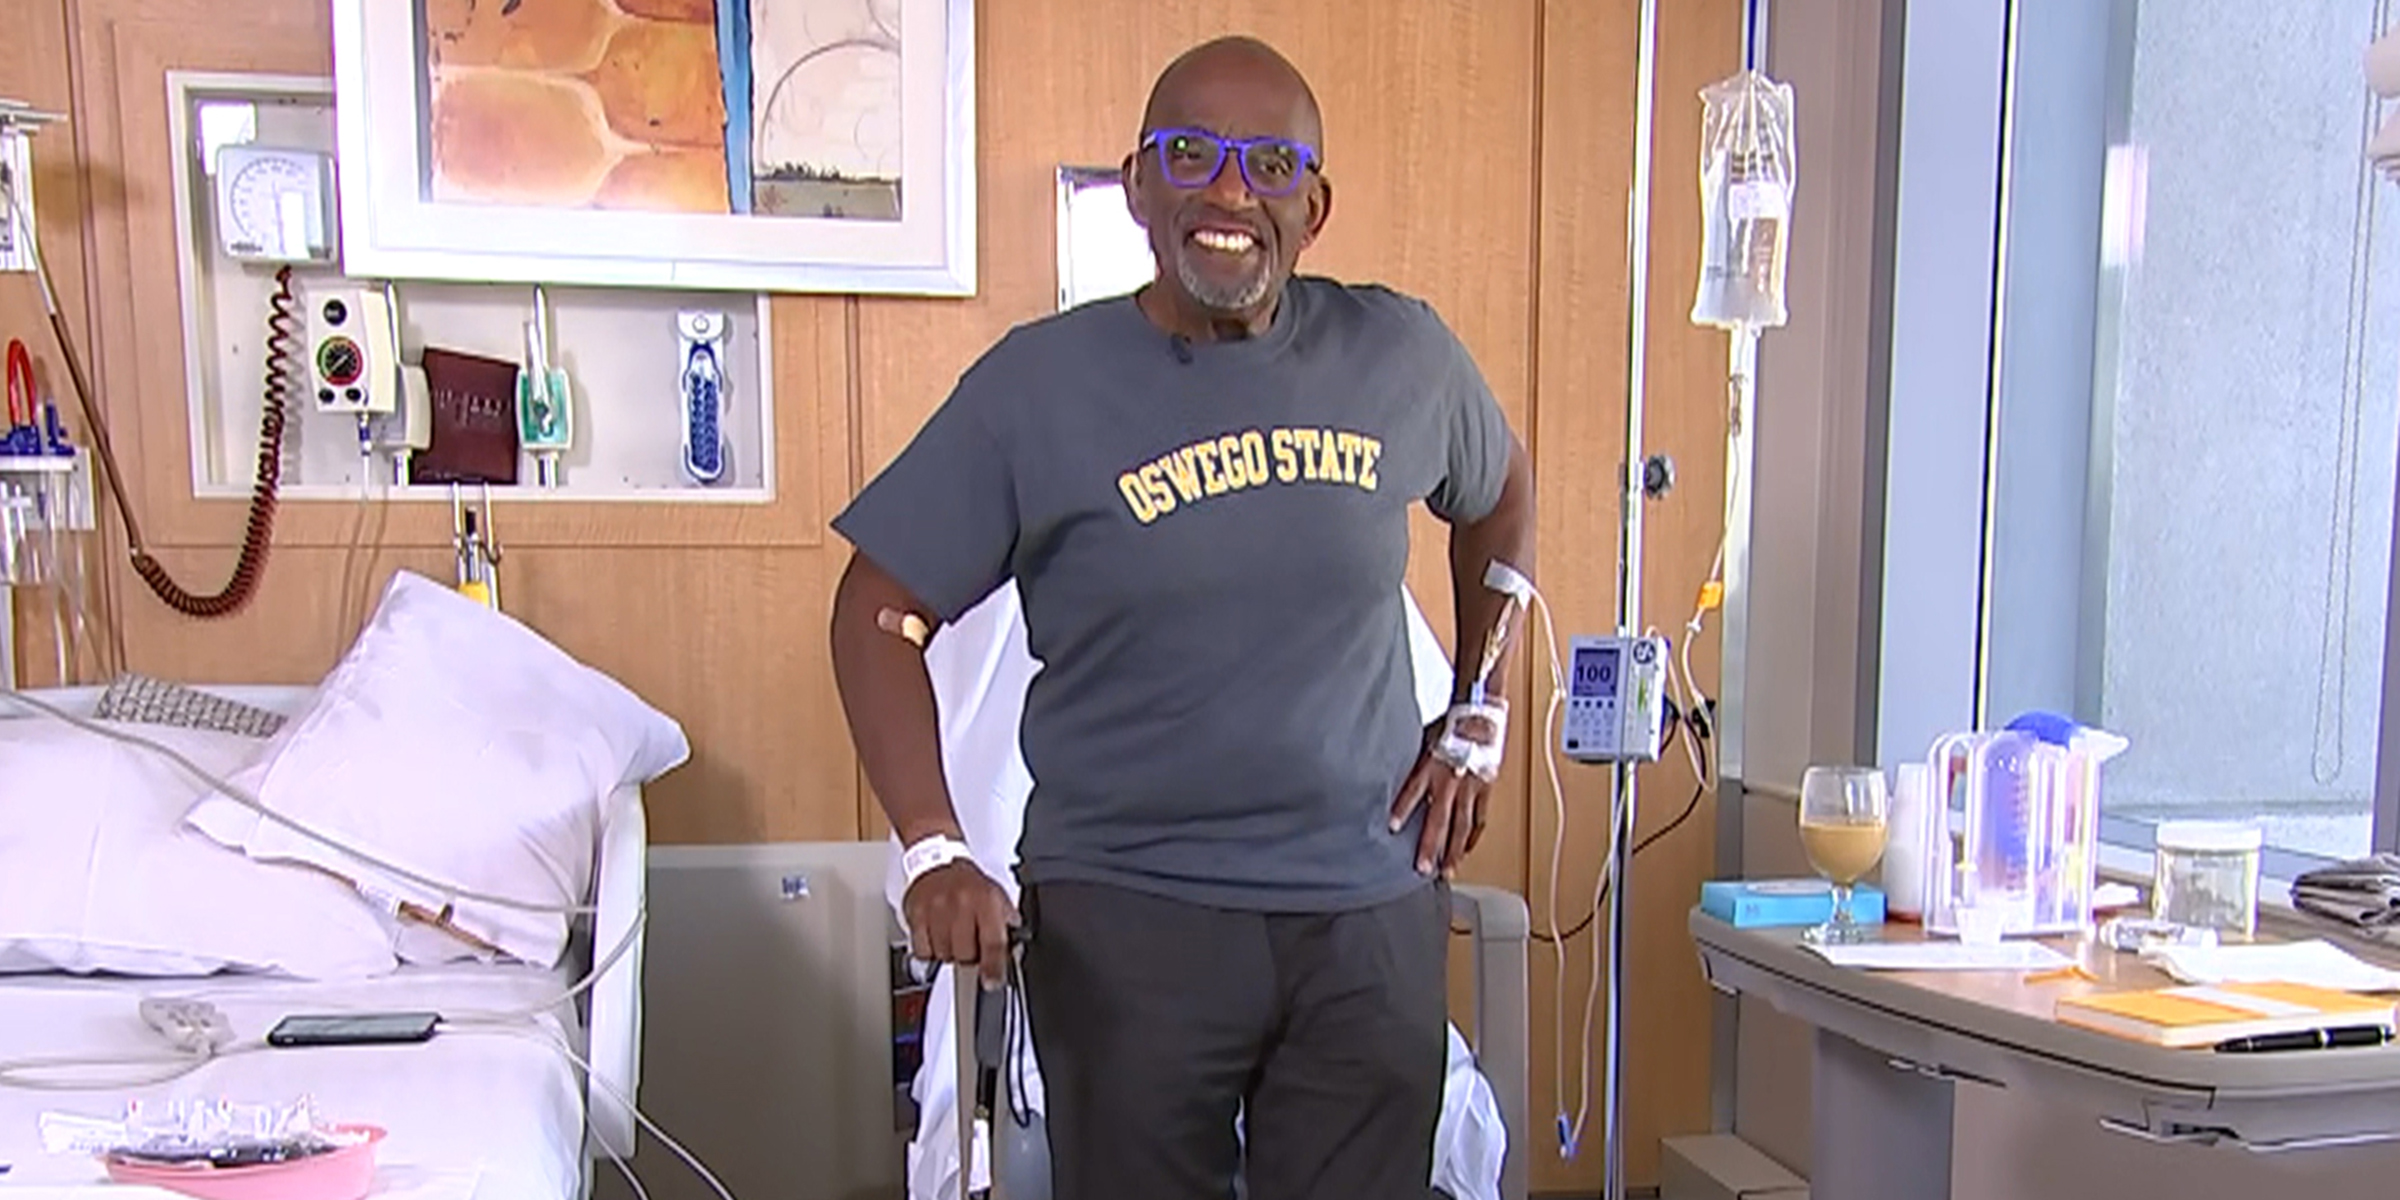 Al Roker is up and walking one day after hip surgery